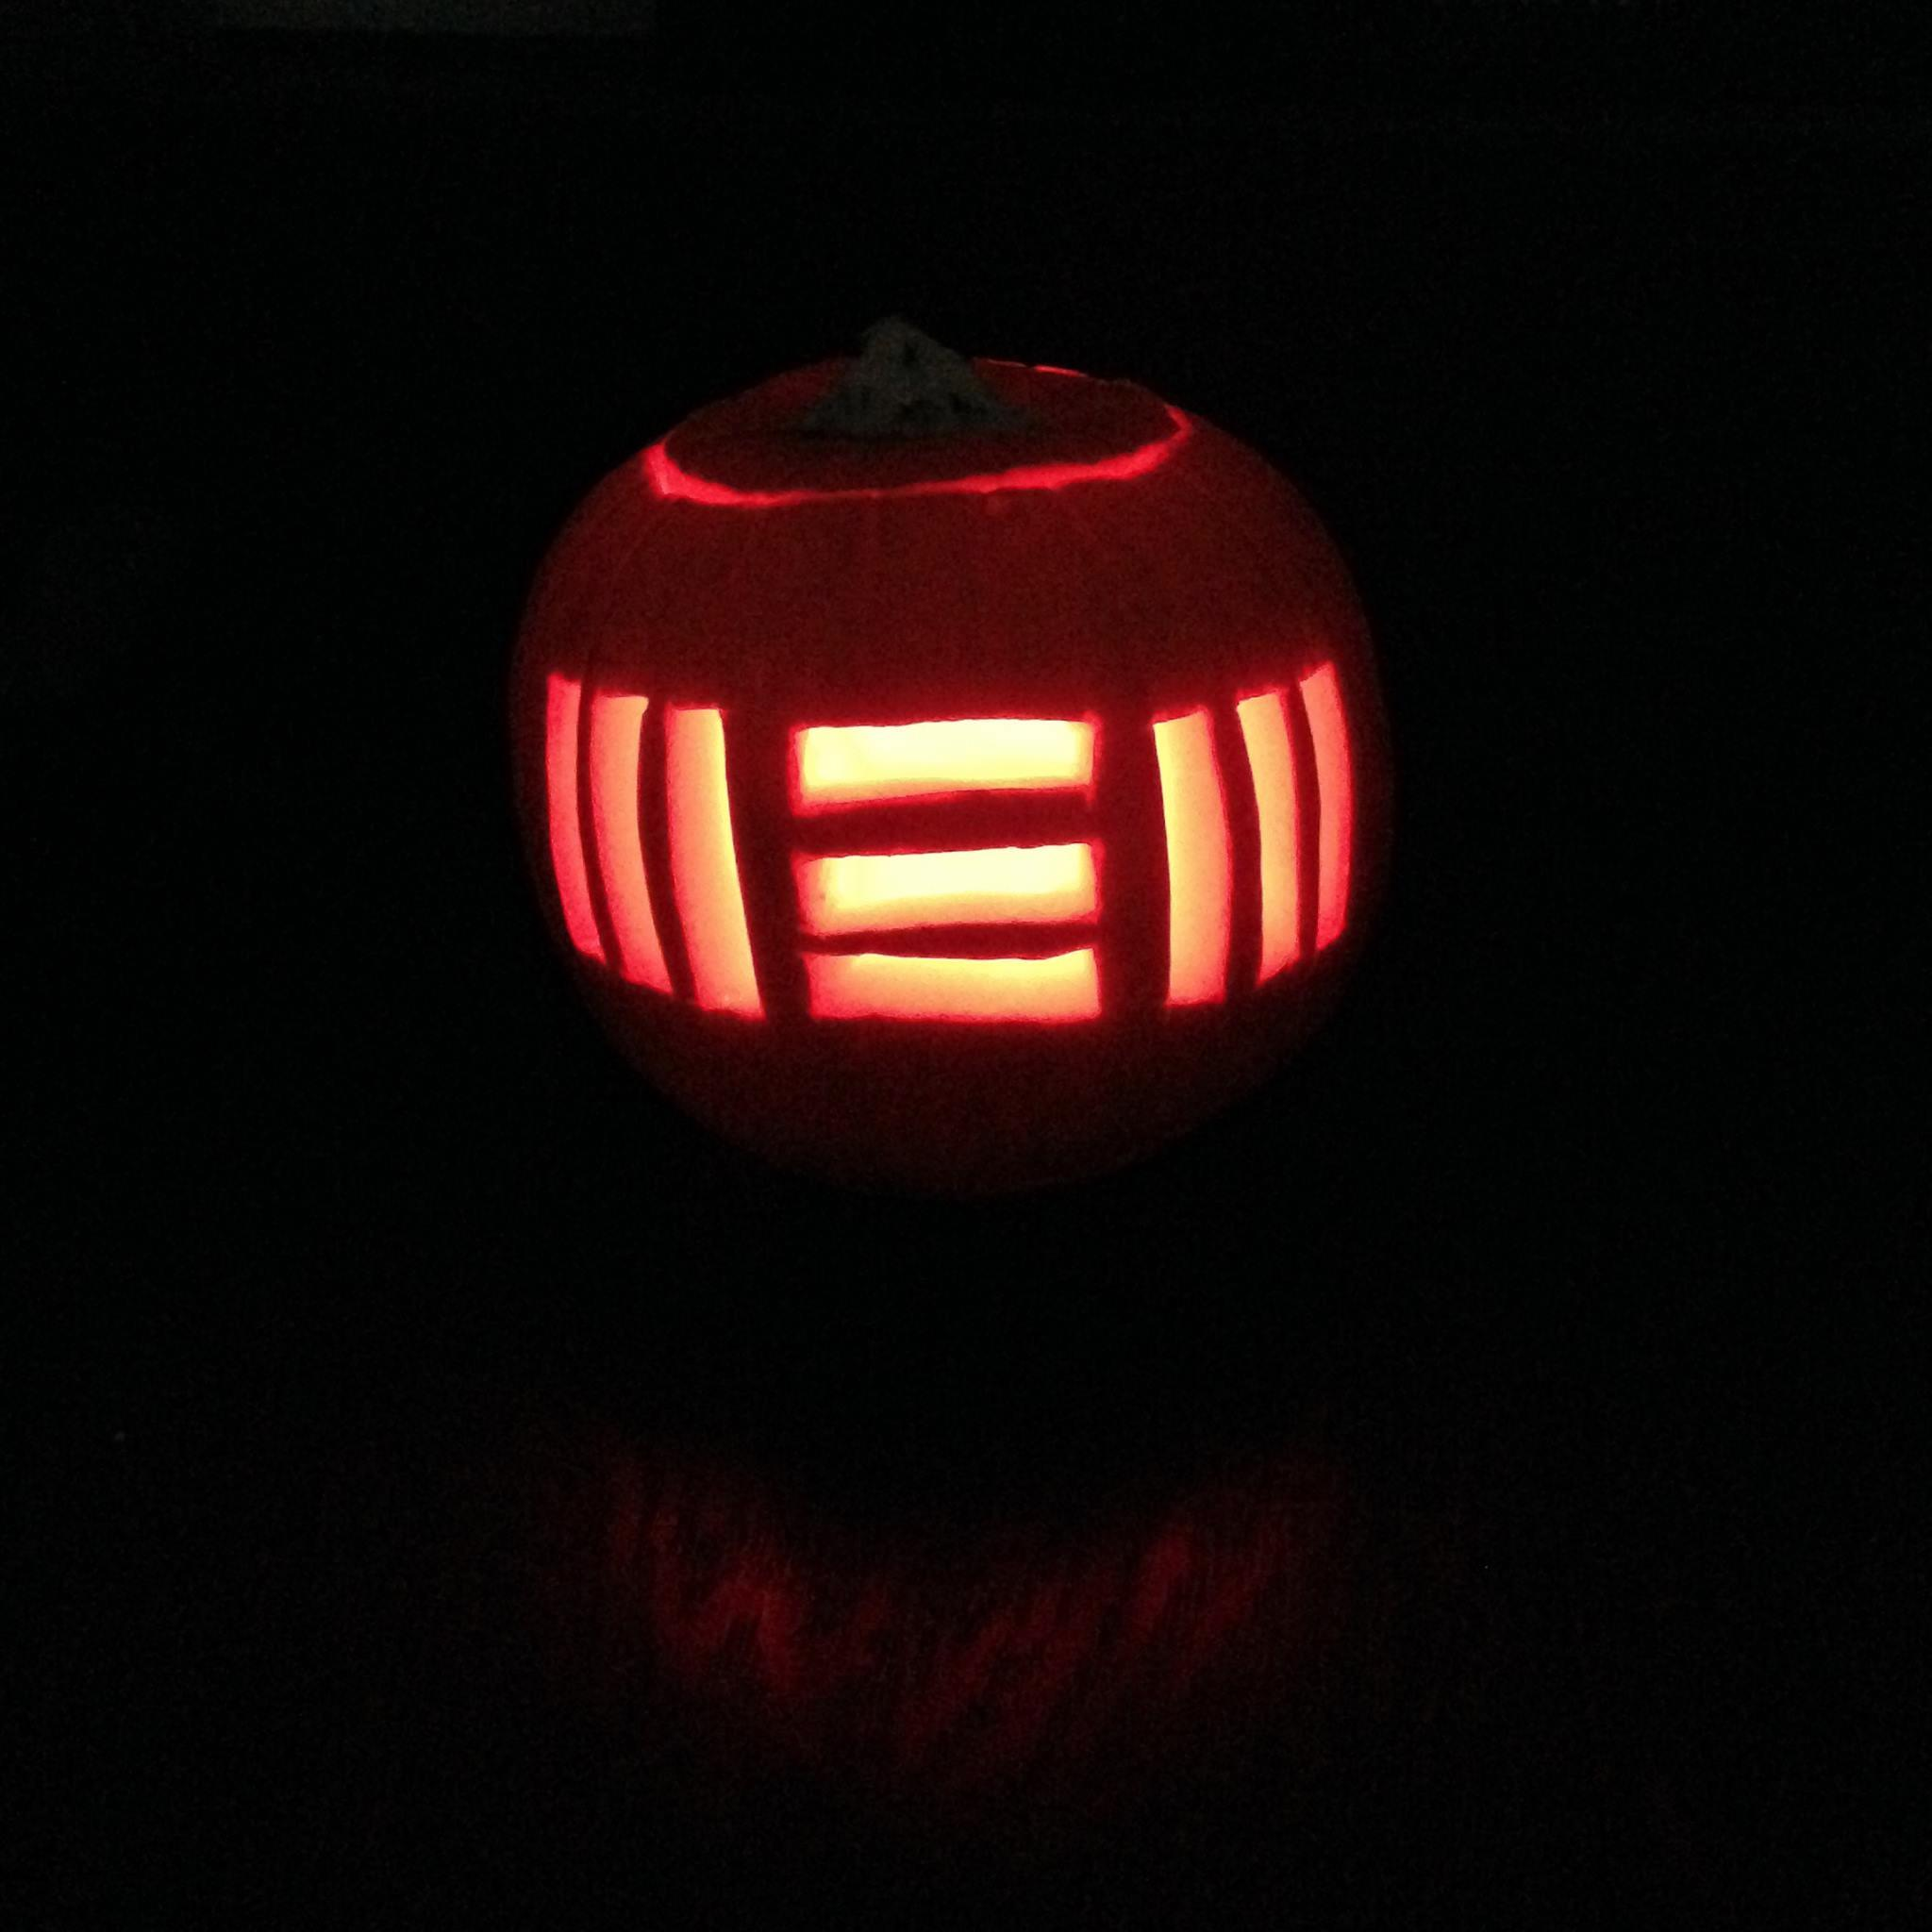 #HappyHalloween Here's our pumpkin from last year made for Paul's NEW album. What's on your pumpkin this year? #FBF http://t.co/Zc7BdZBIky